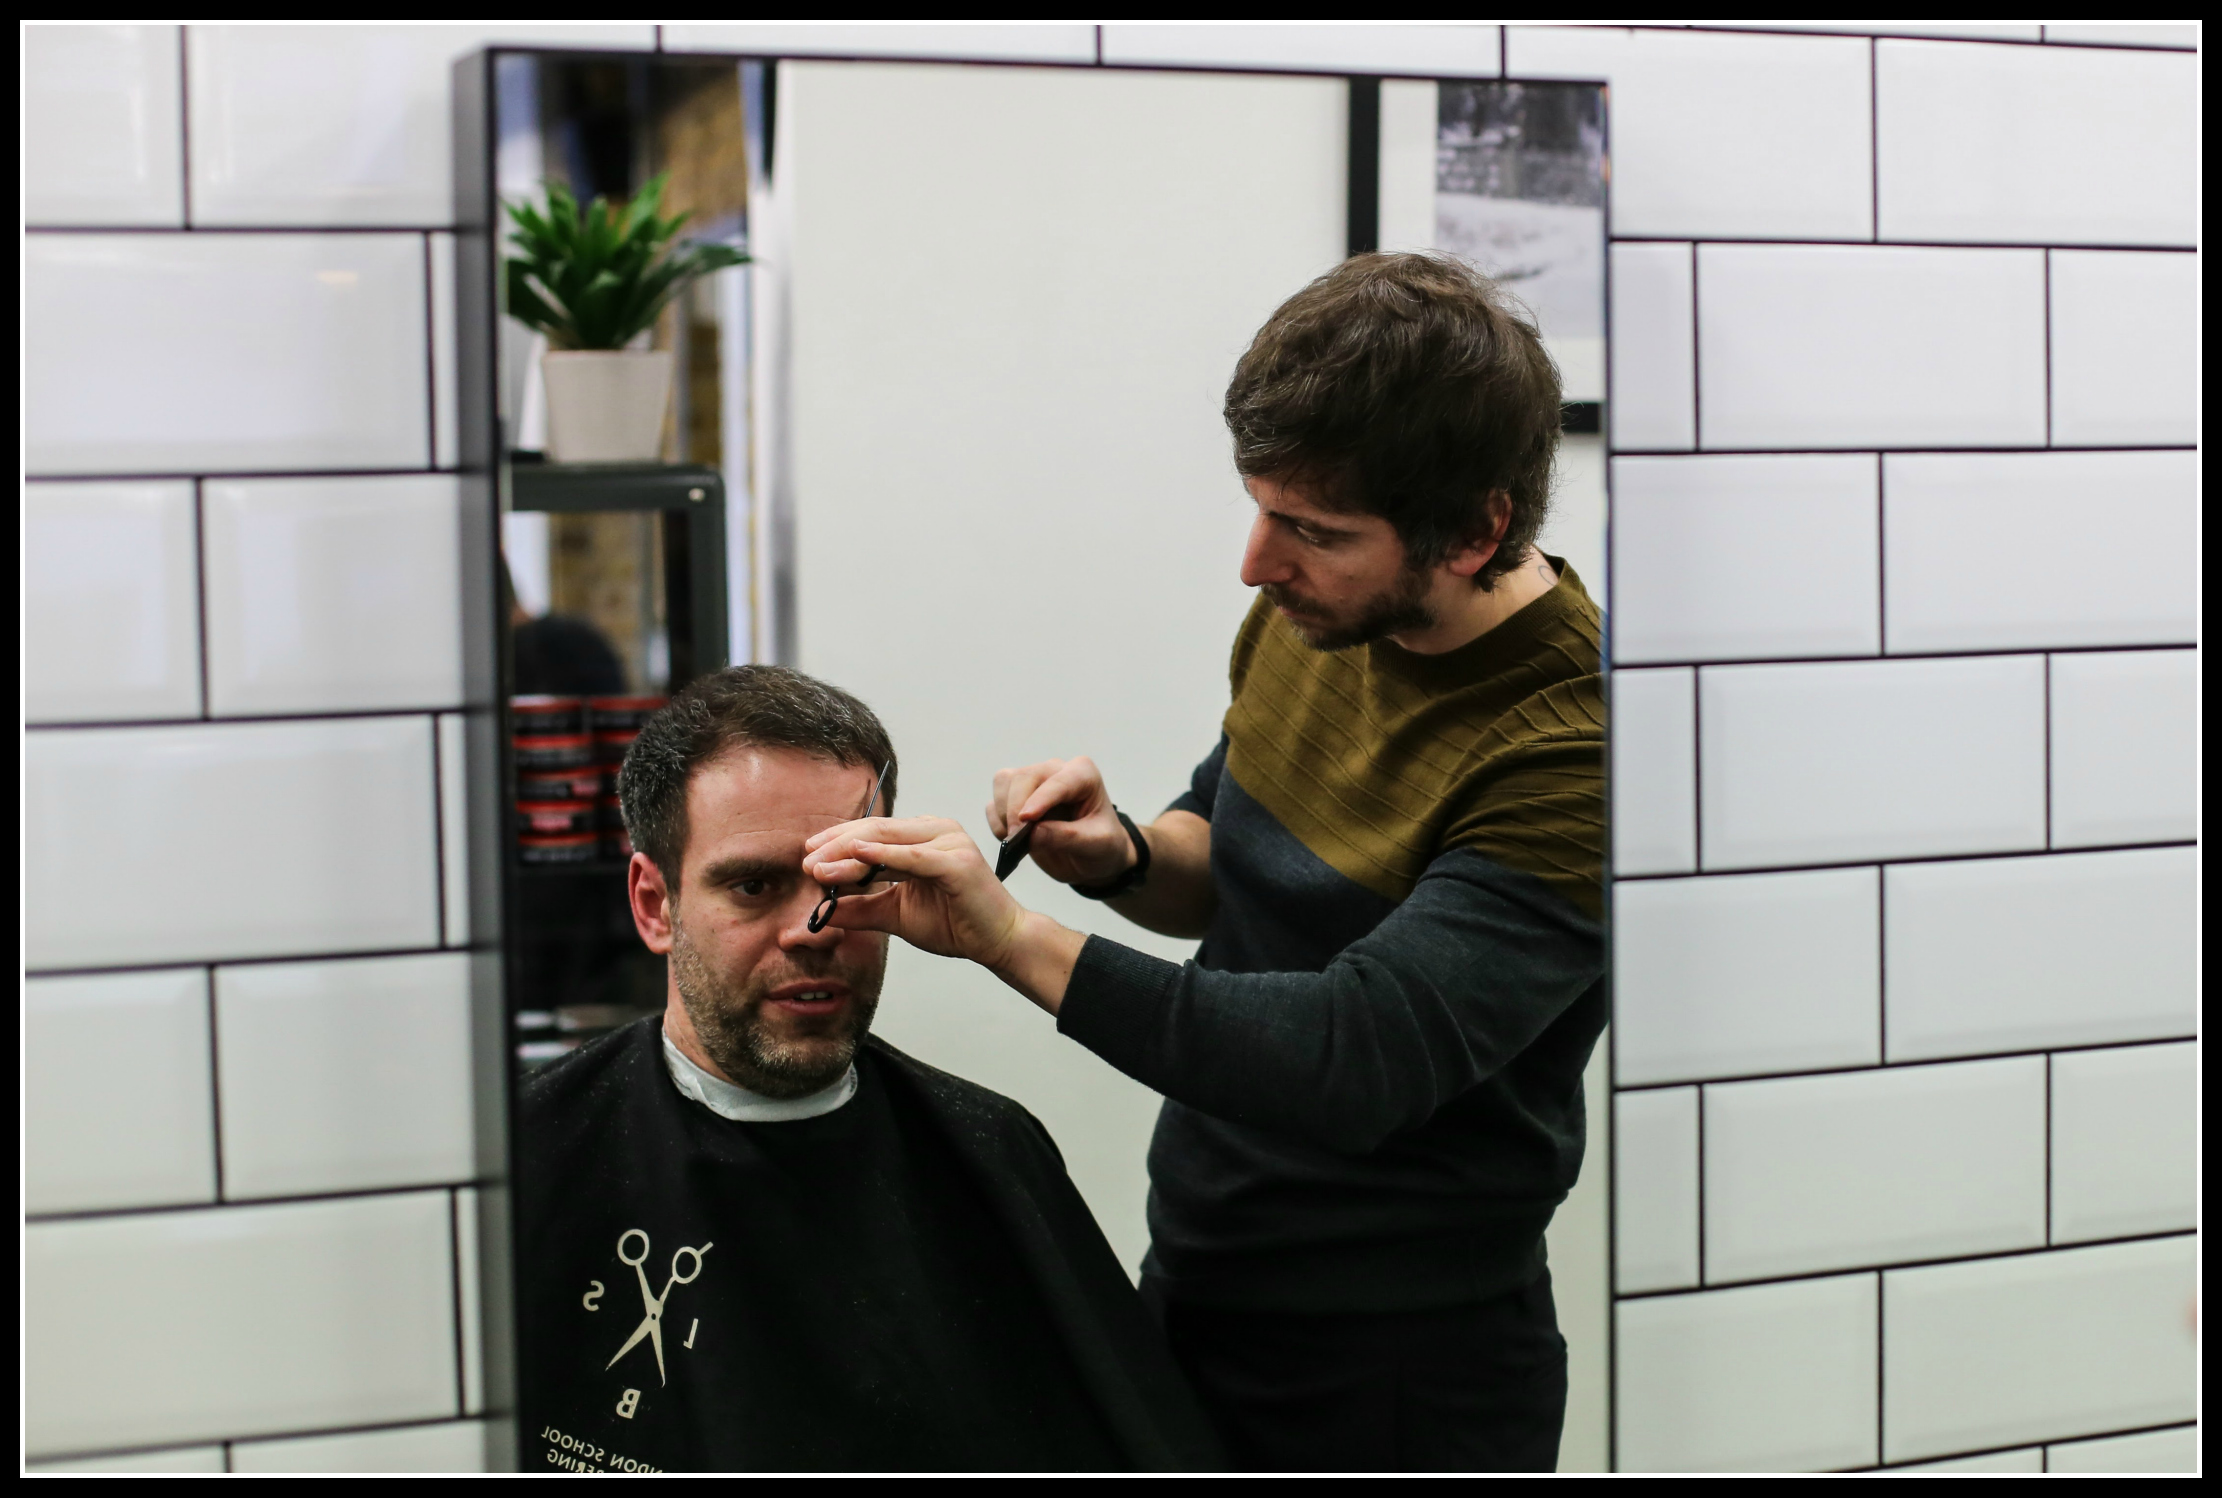 London Schol of Barbering, barber, haircut, hair style, men's style, men's fashion